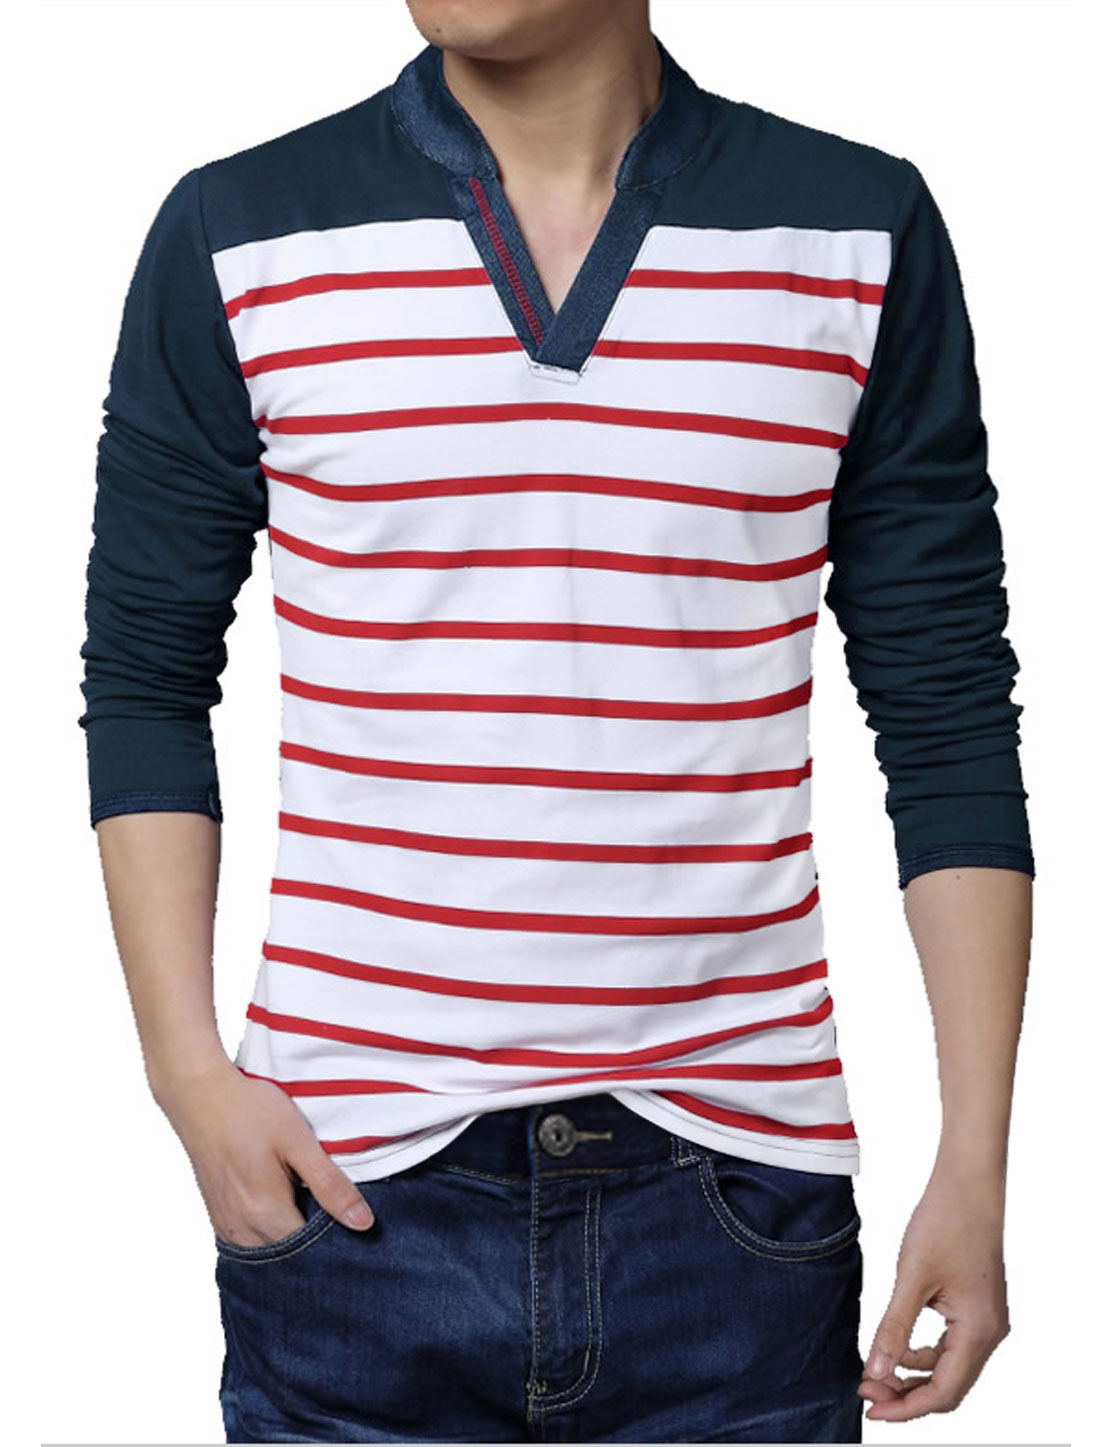 Men Panel Design Stripes Casual Autumn Shirt Navy Blue Red L